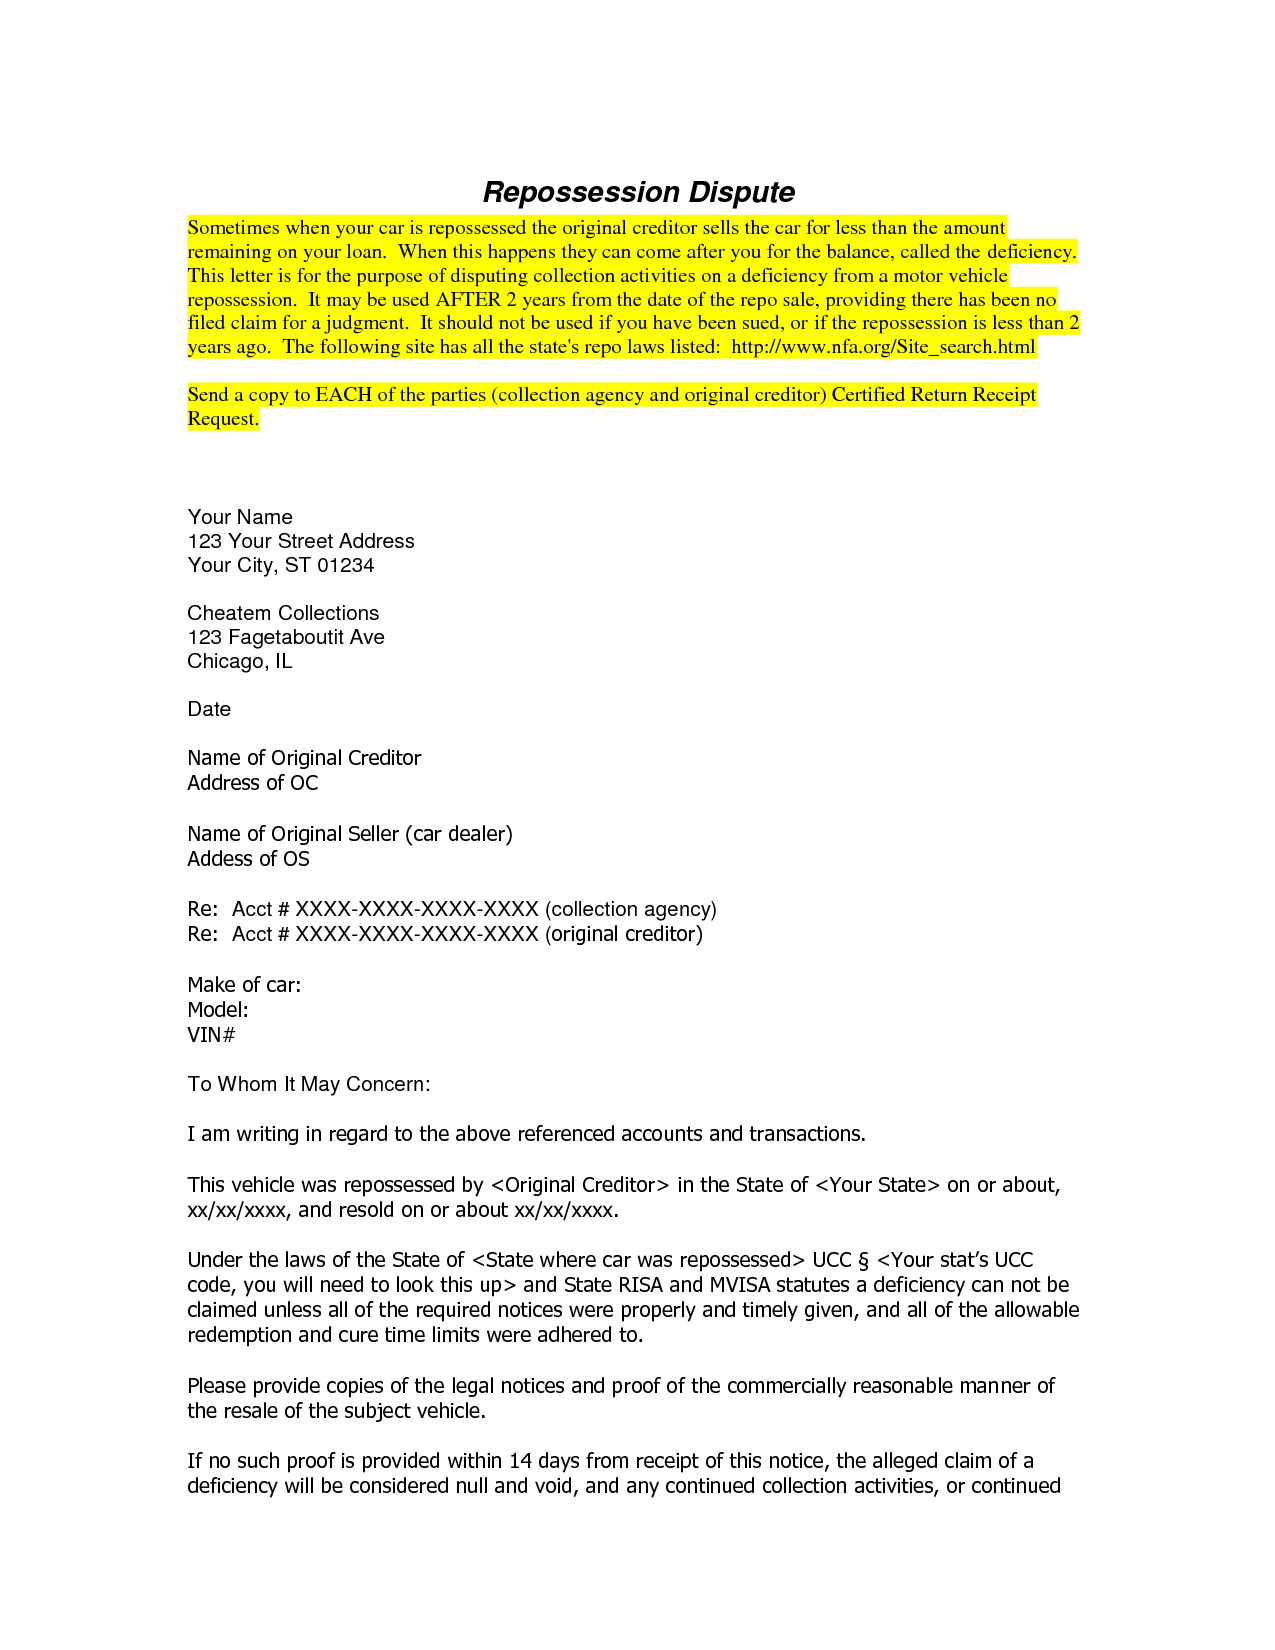 Vehicle Repossession Letter Template Samples Letter Templates